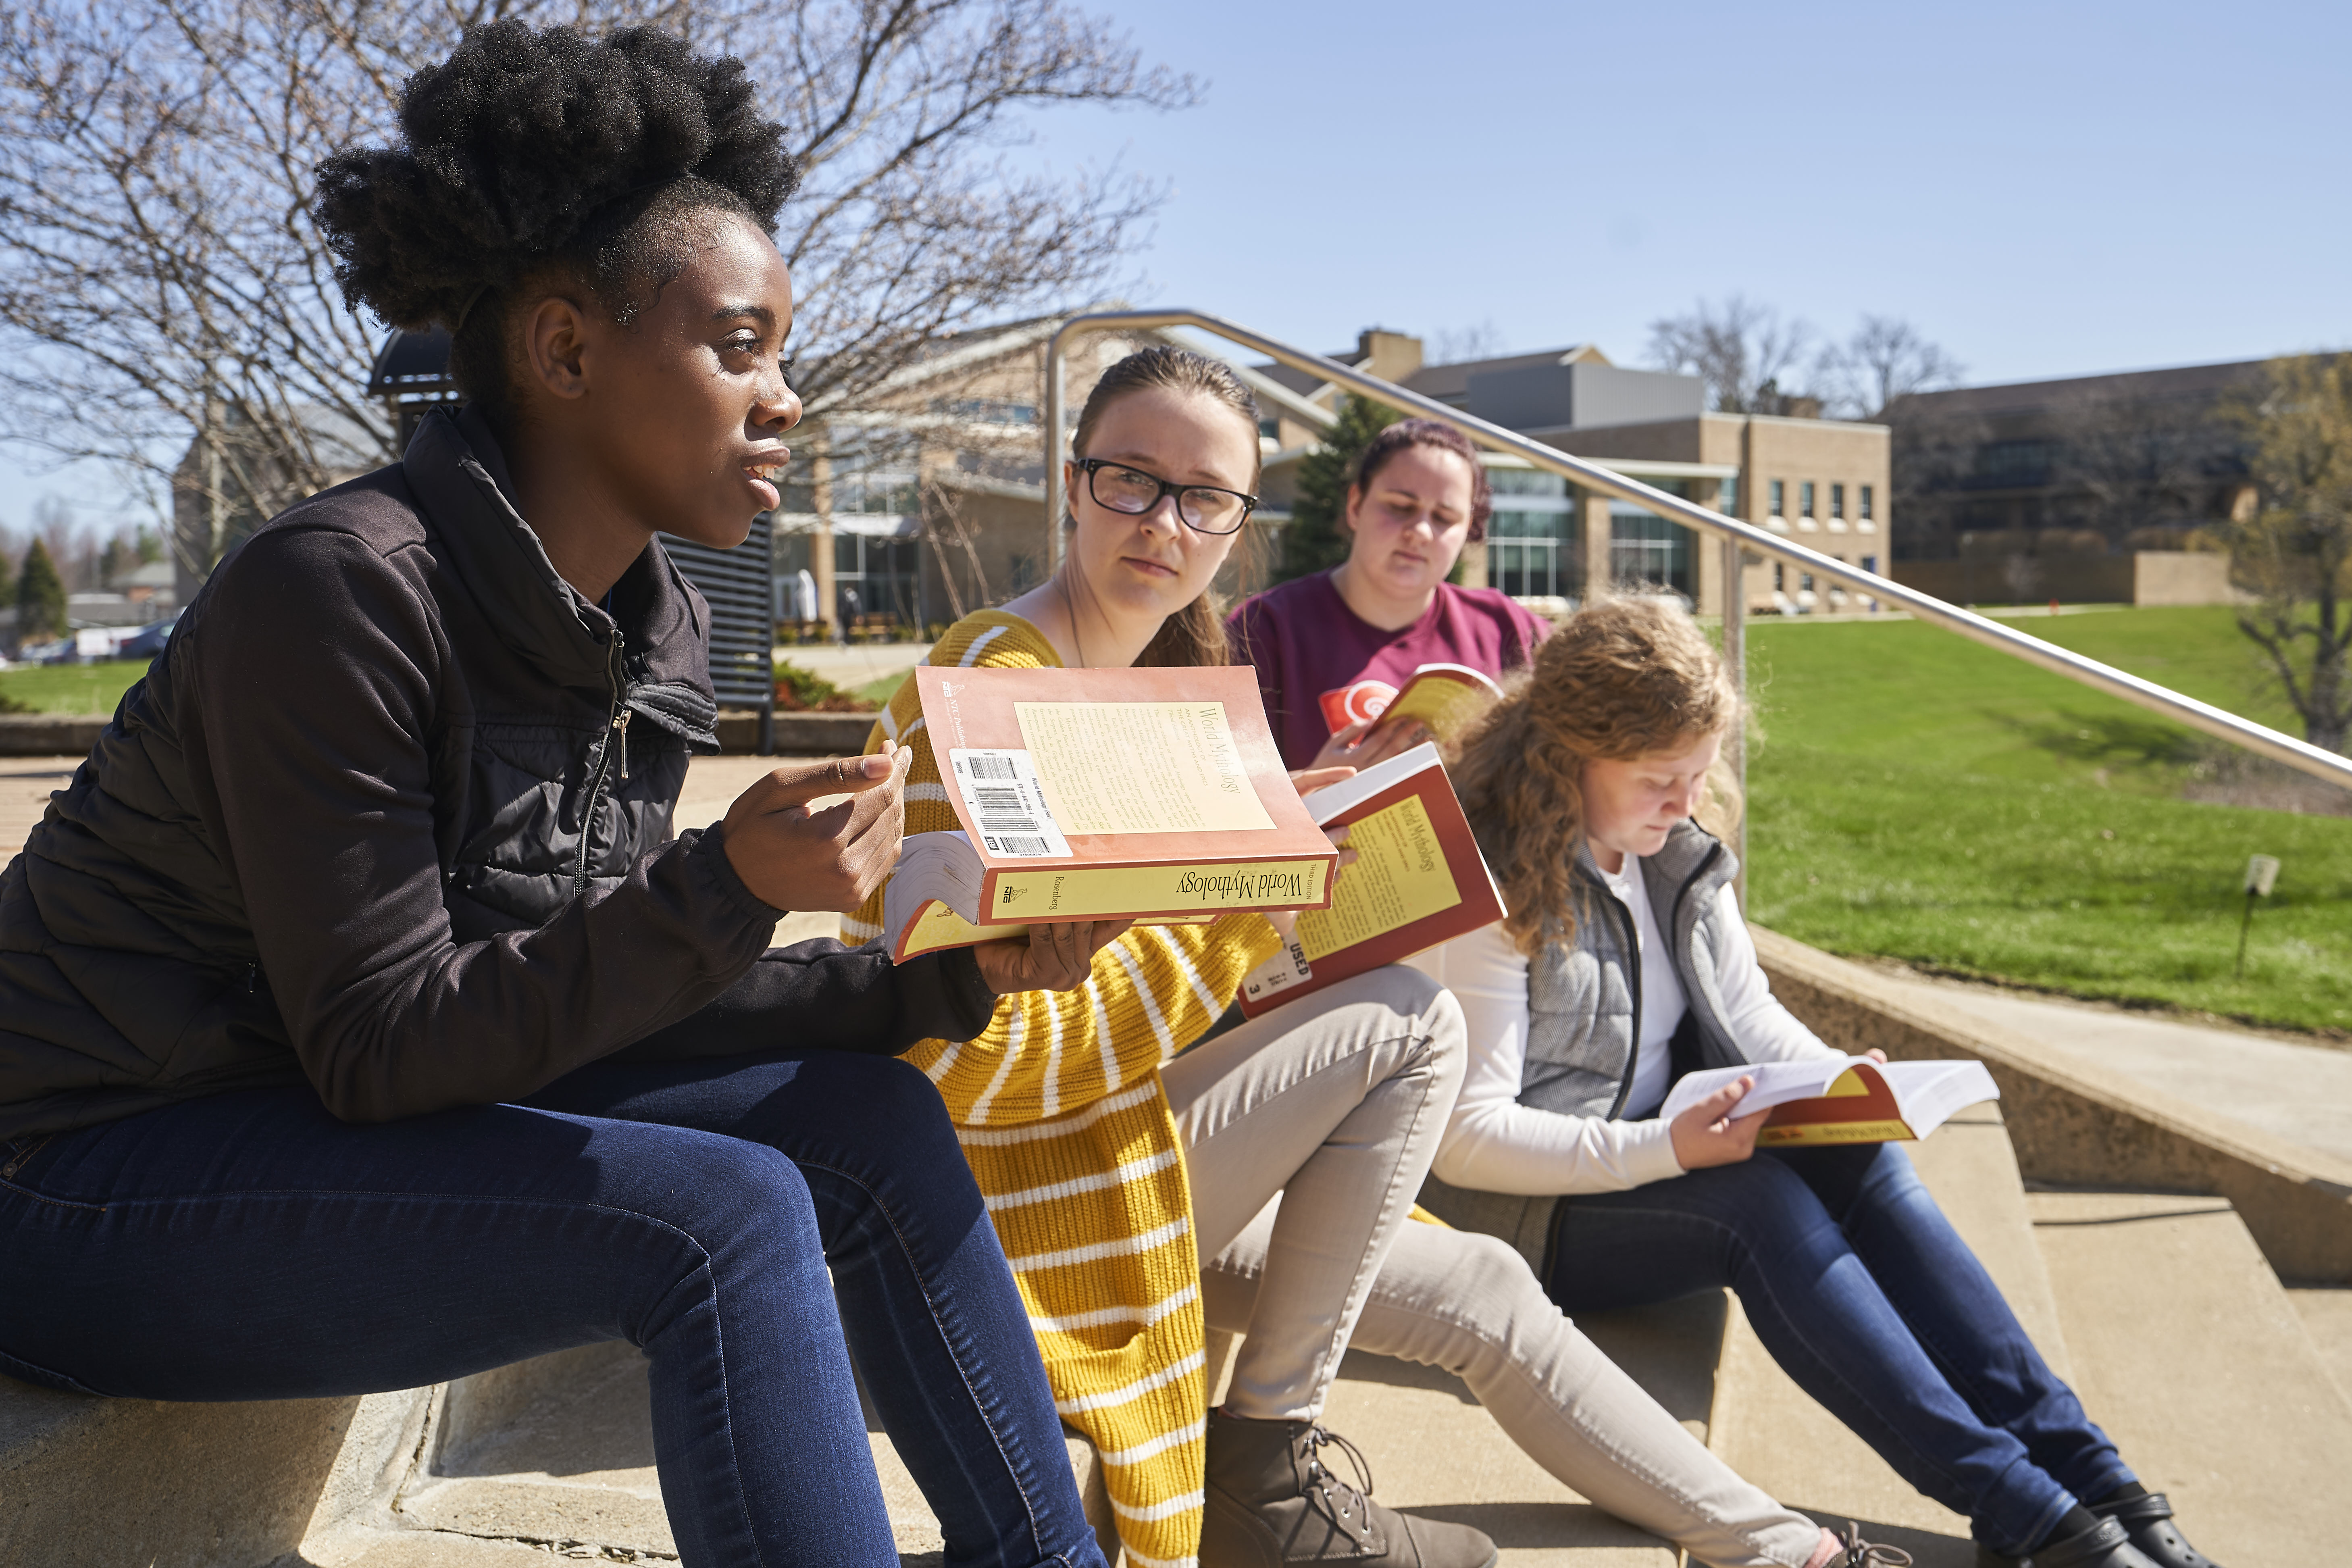 Students Studying on Pilla Steps